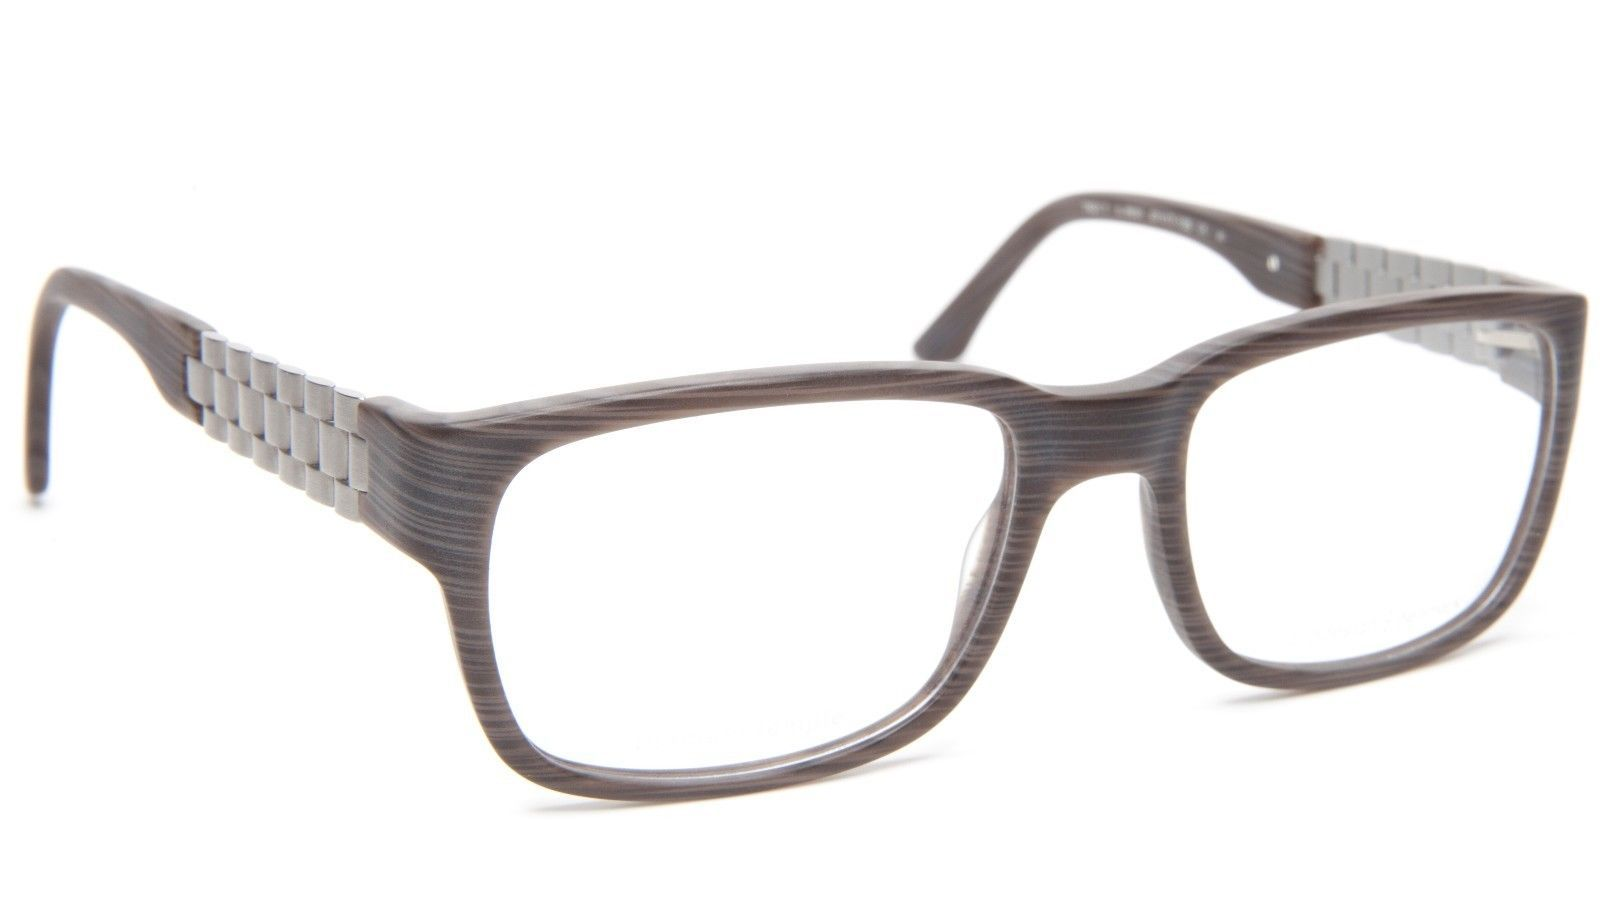 1279e4d97e5 ... NEW PRODESIGN DENMARK 7631 1 c.6531 GREY EYEGLASSES FRAME 57-17-135 ...